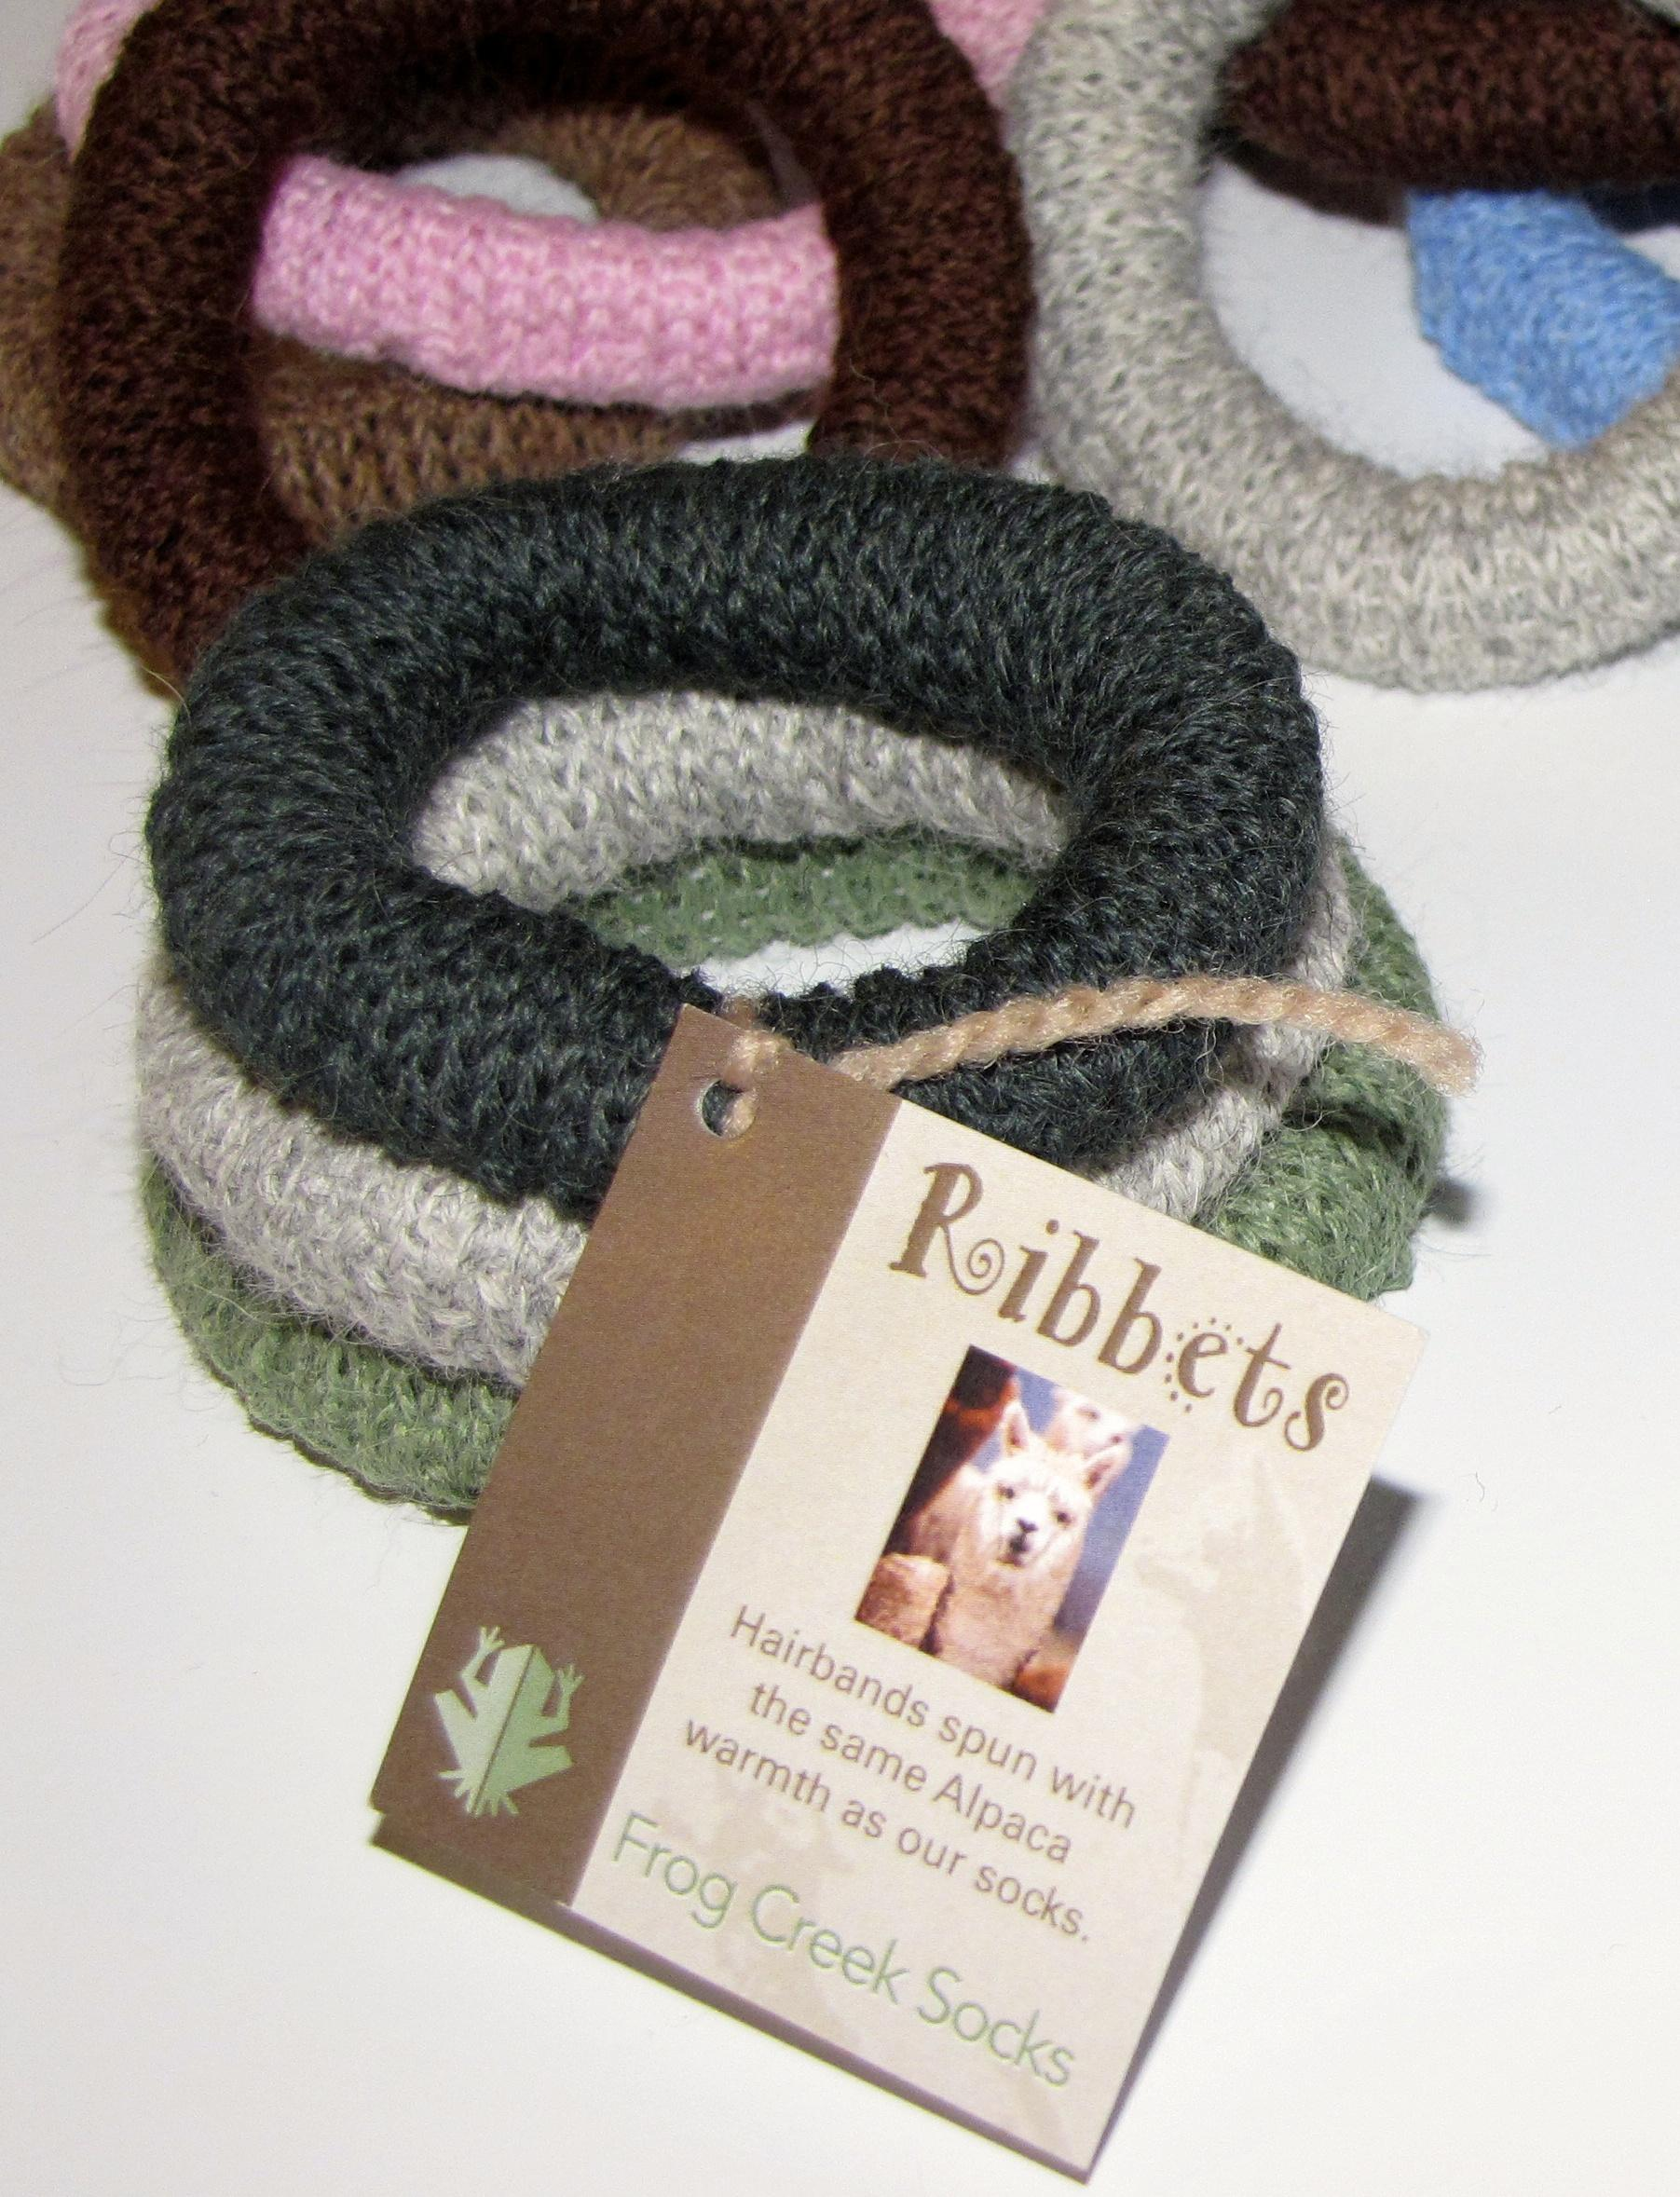 Ribbets (Hairbands)